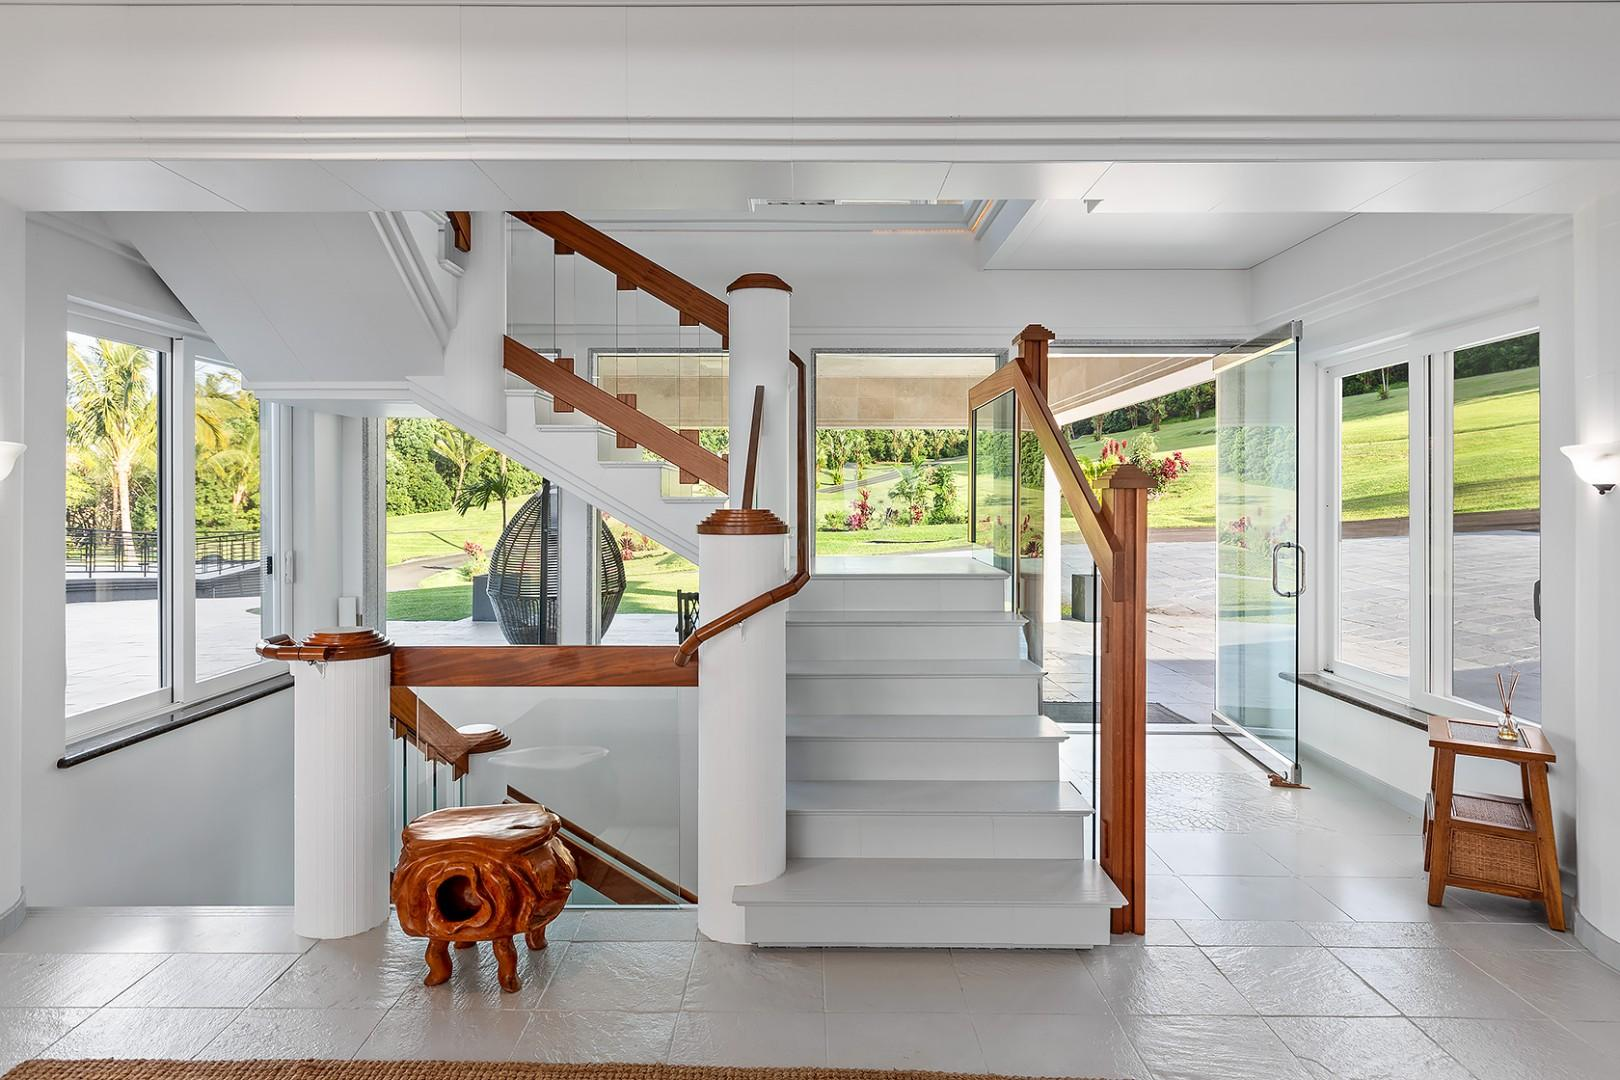 Stairwell to different home levels